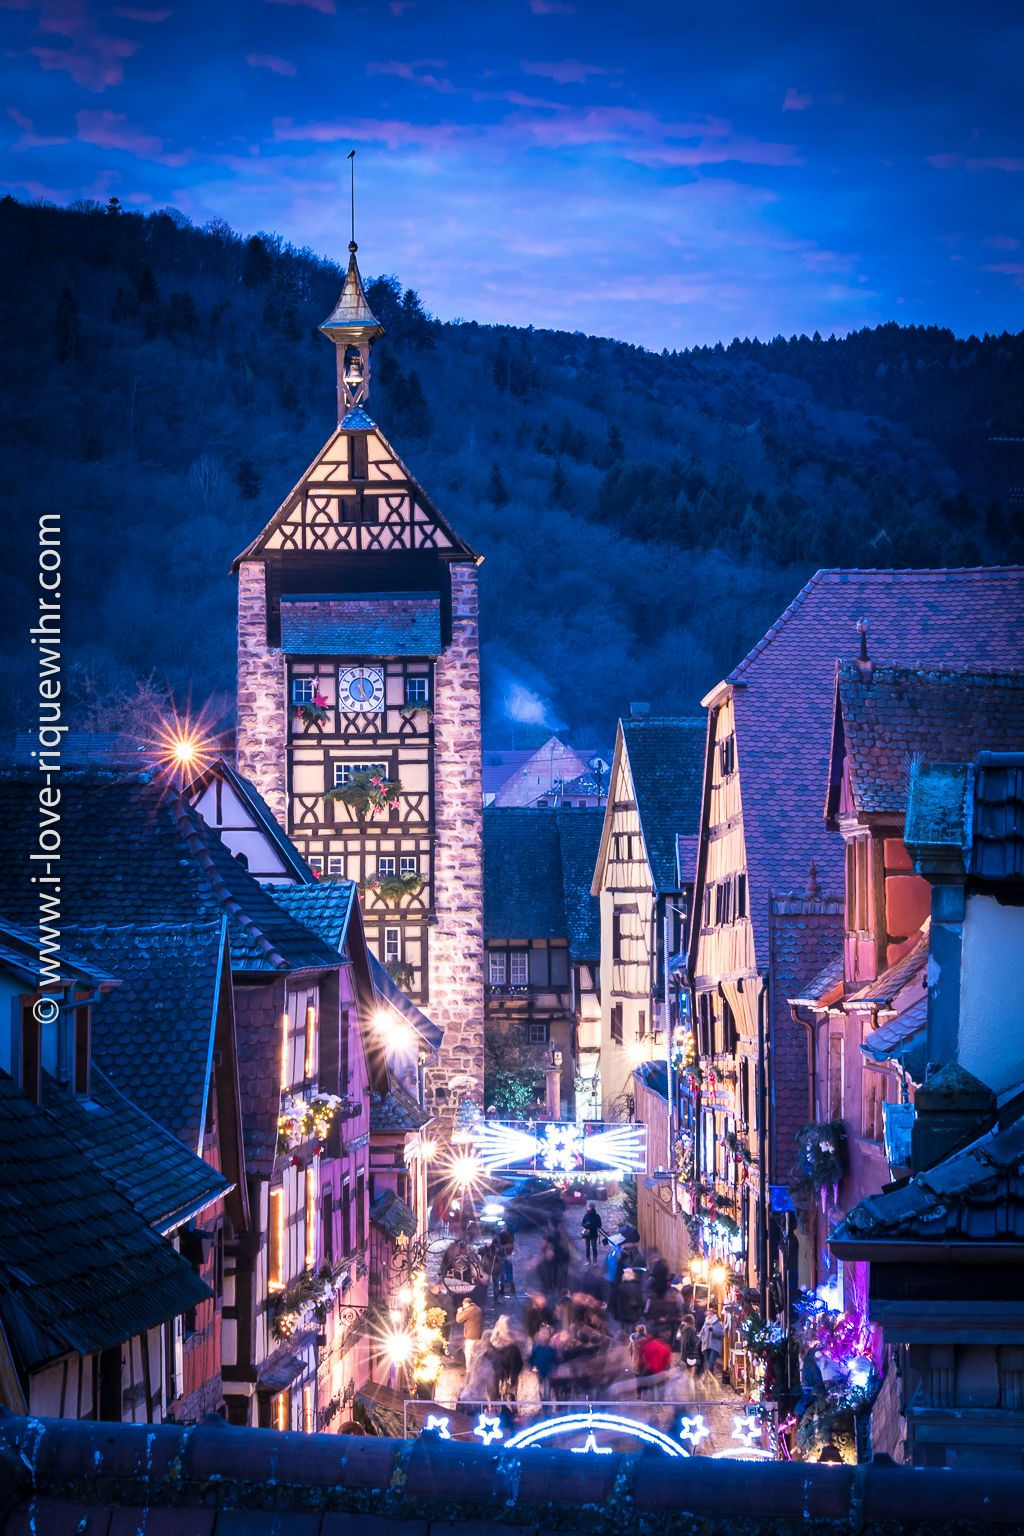 Riquewihr is one of the prettiest villages in France. From